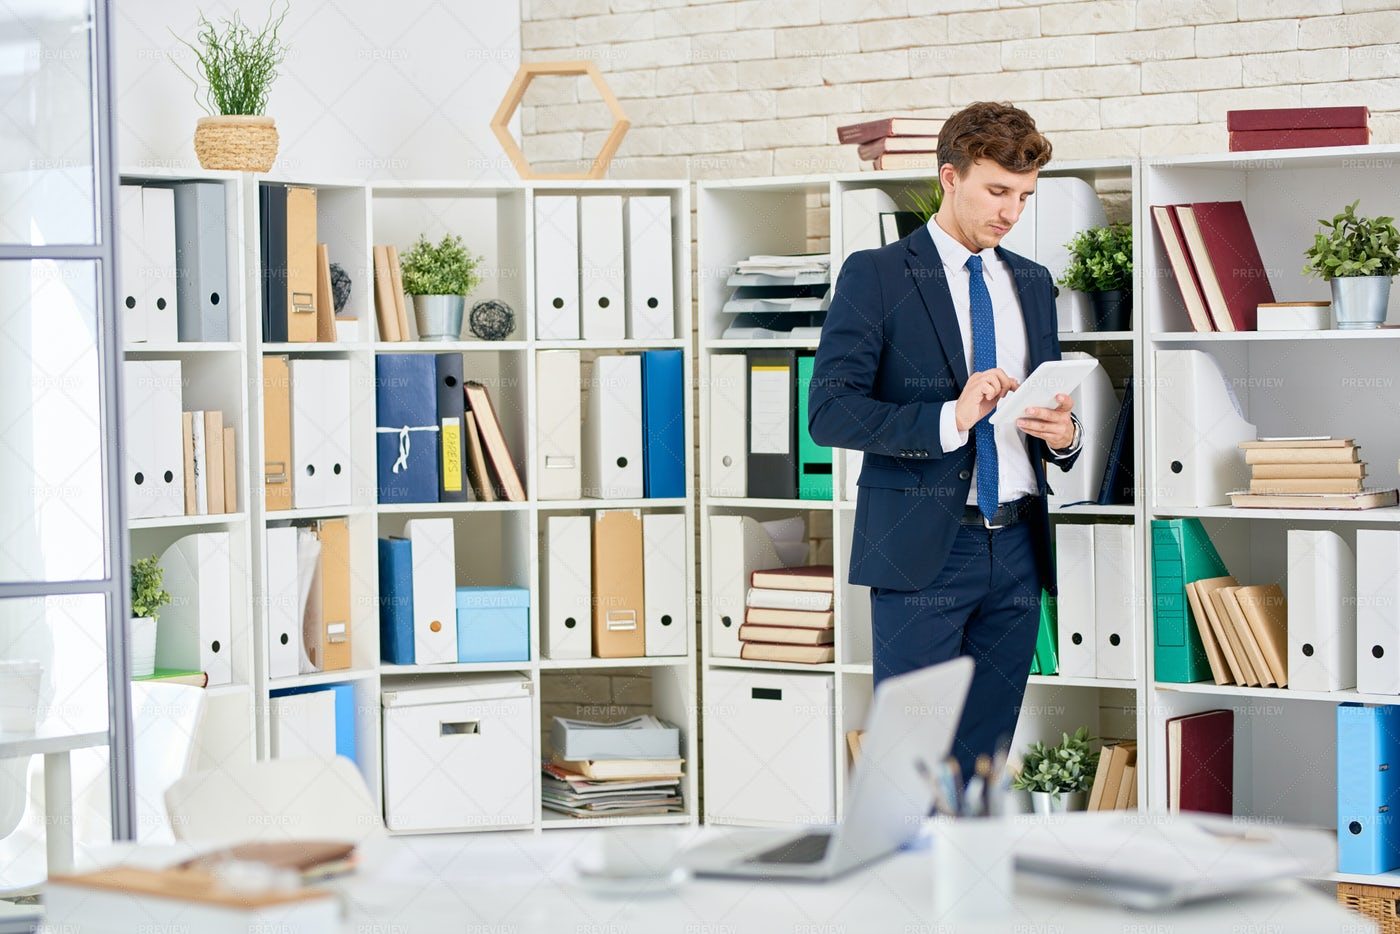 Handsome Businessman  In Office: Stock Photos